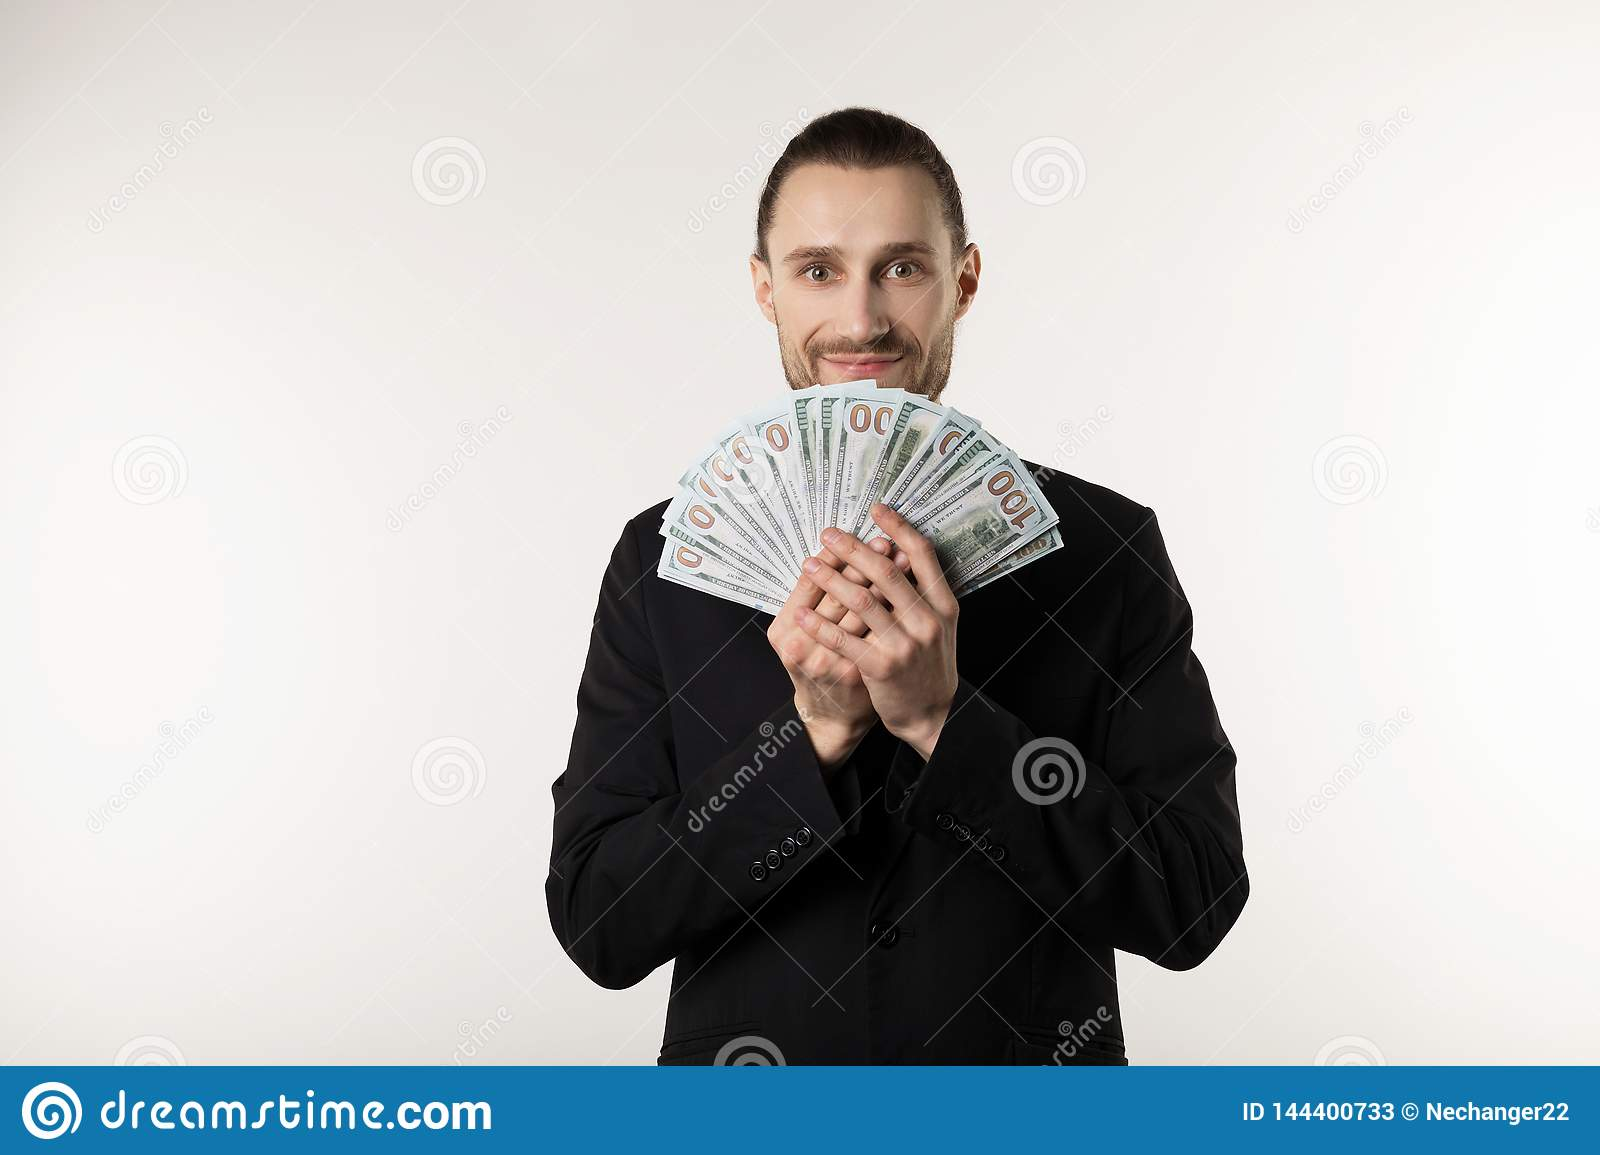 Portrait of handsome businessman in black suit that hides his face behind the money banknotes